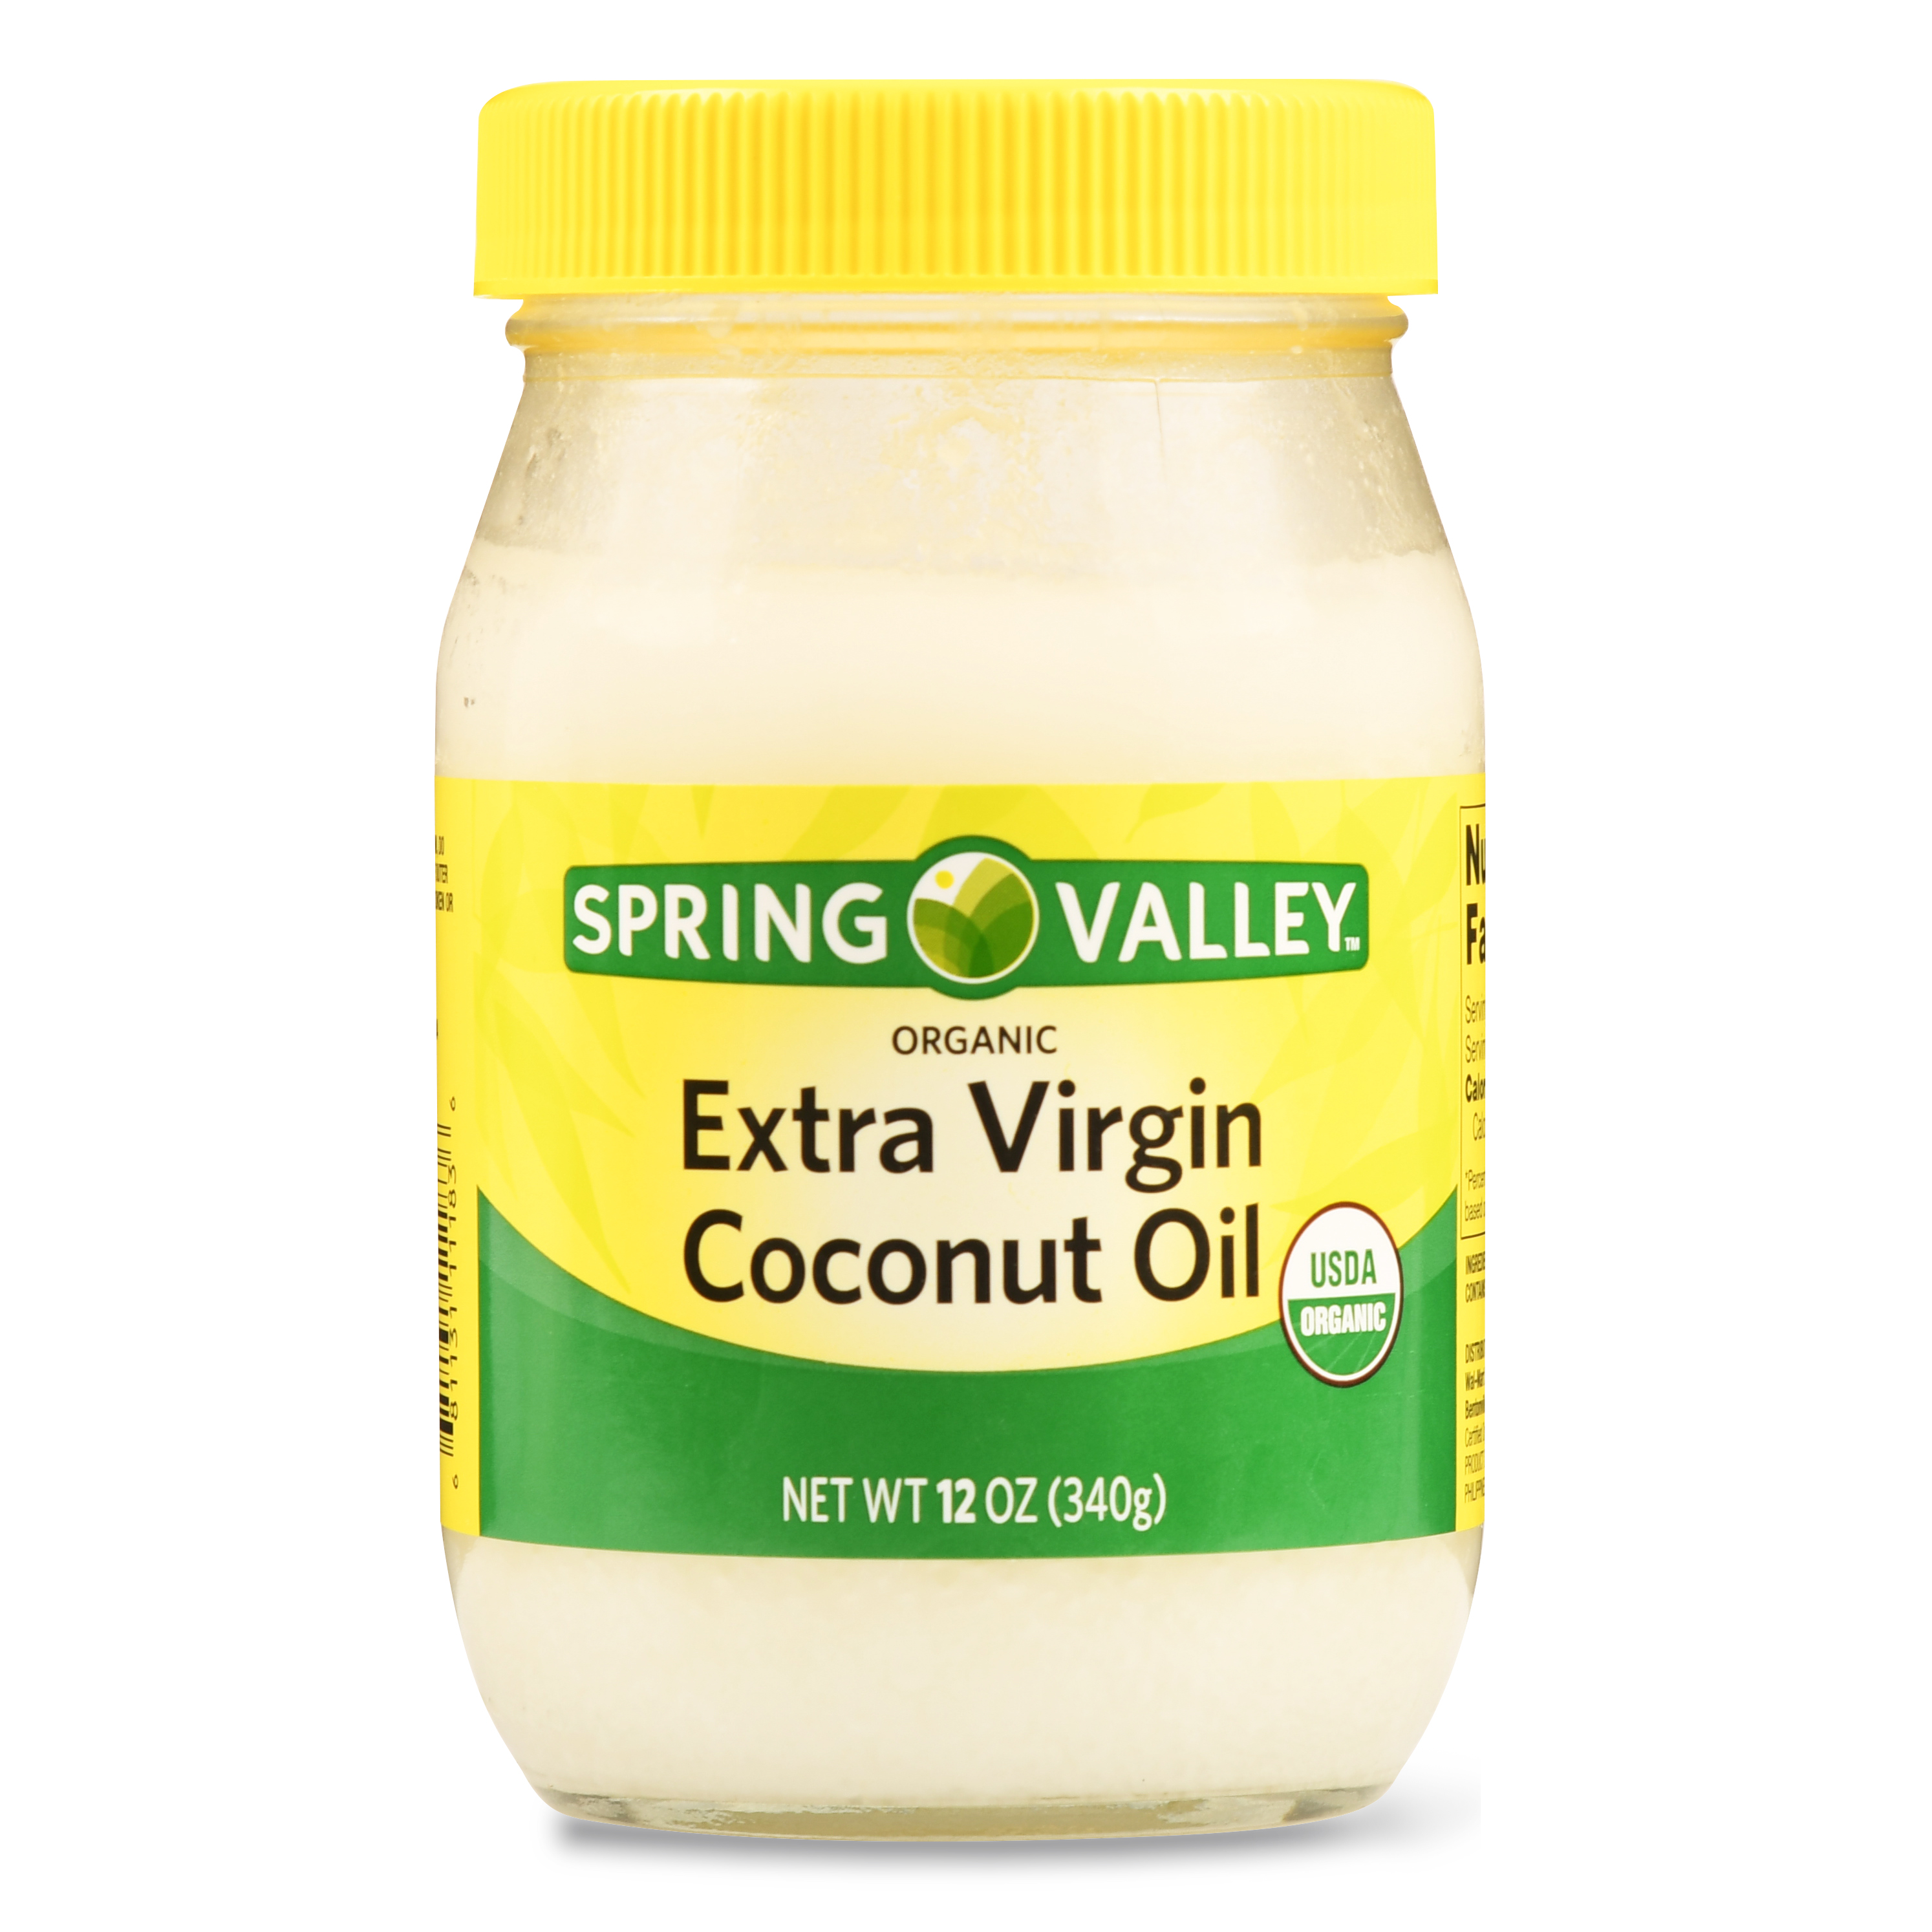 Spring Valley Organic Extra Virgin Coconut Oil, 12.0 Oz